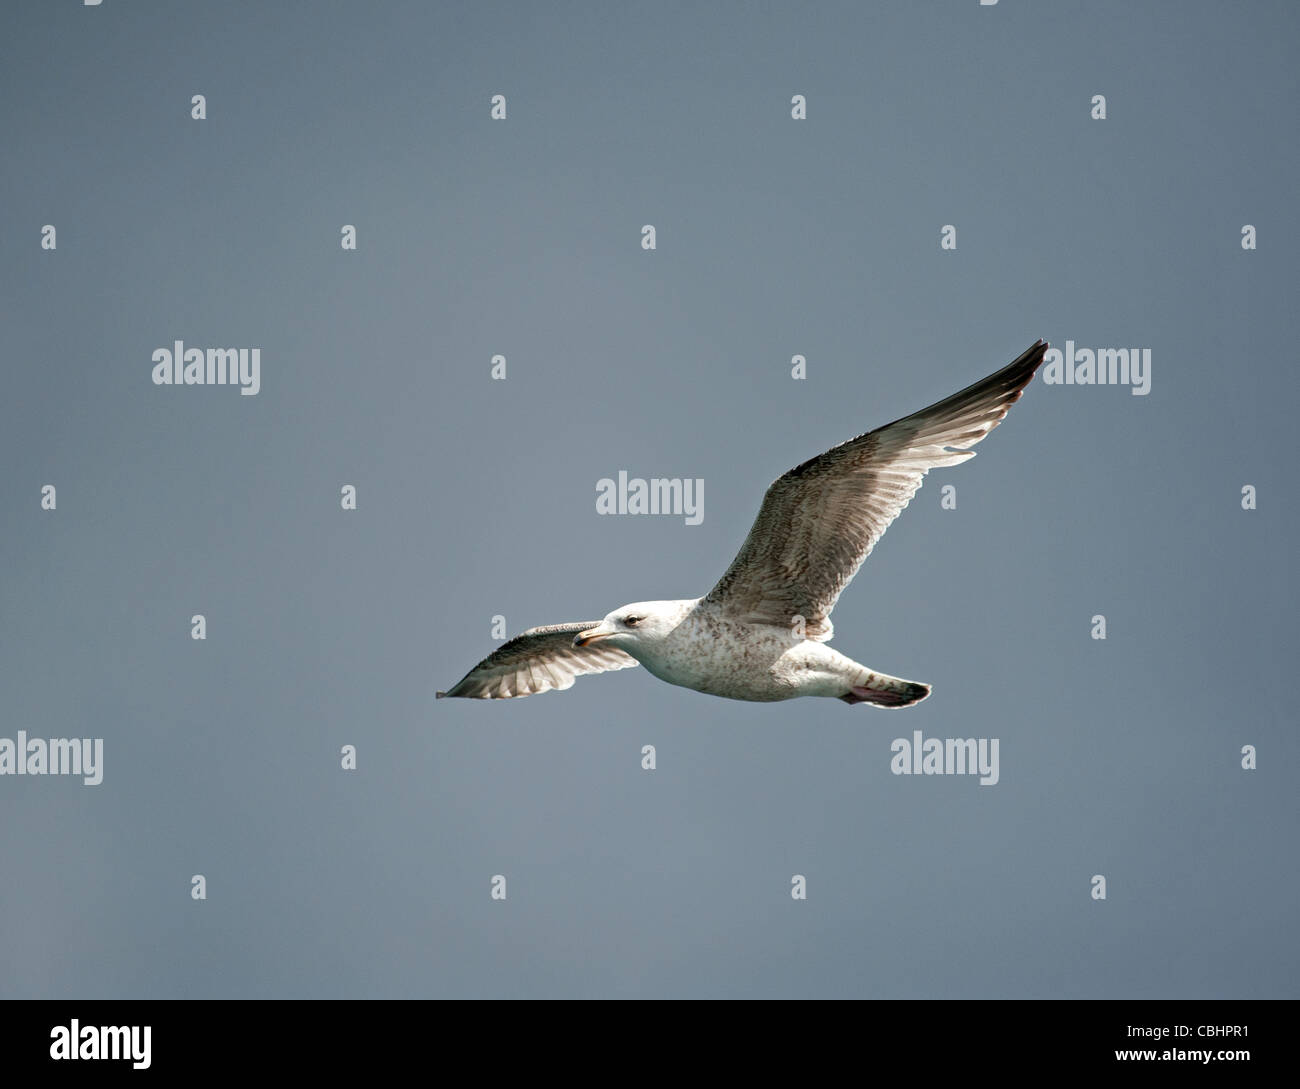 Young Herring Gull follows a fishing boat in search of food. SCO 7796 - Stock Image